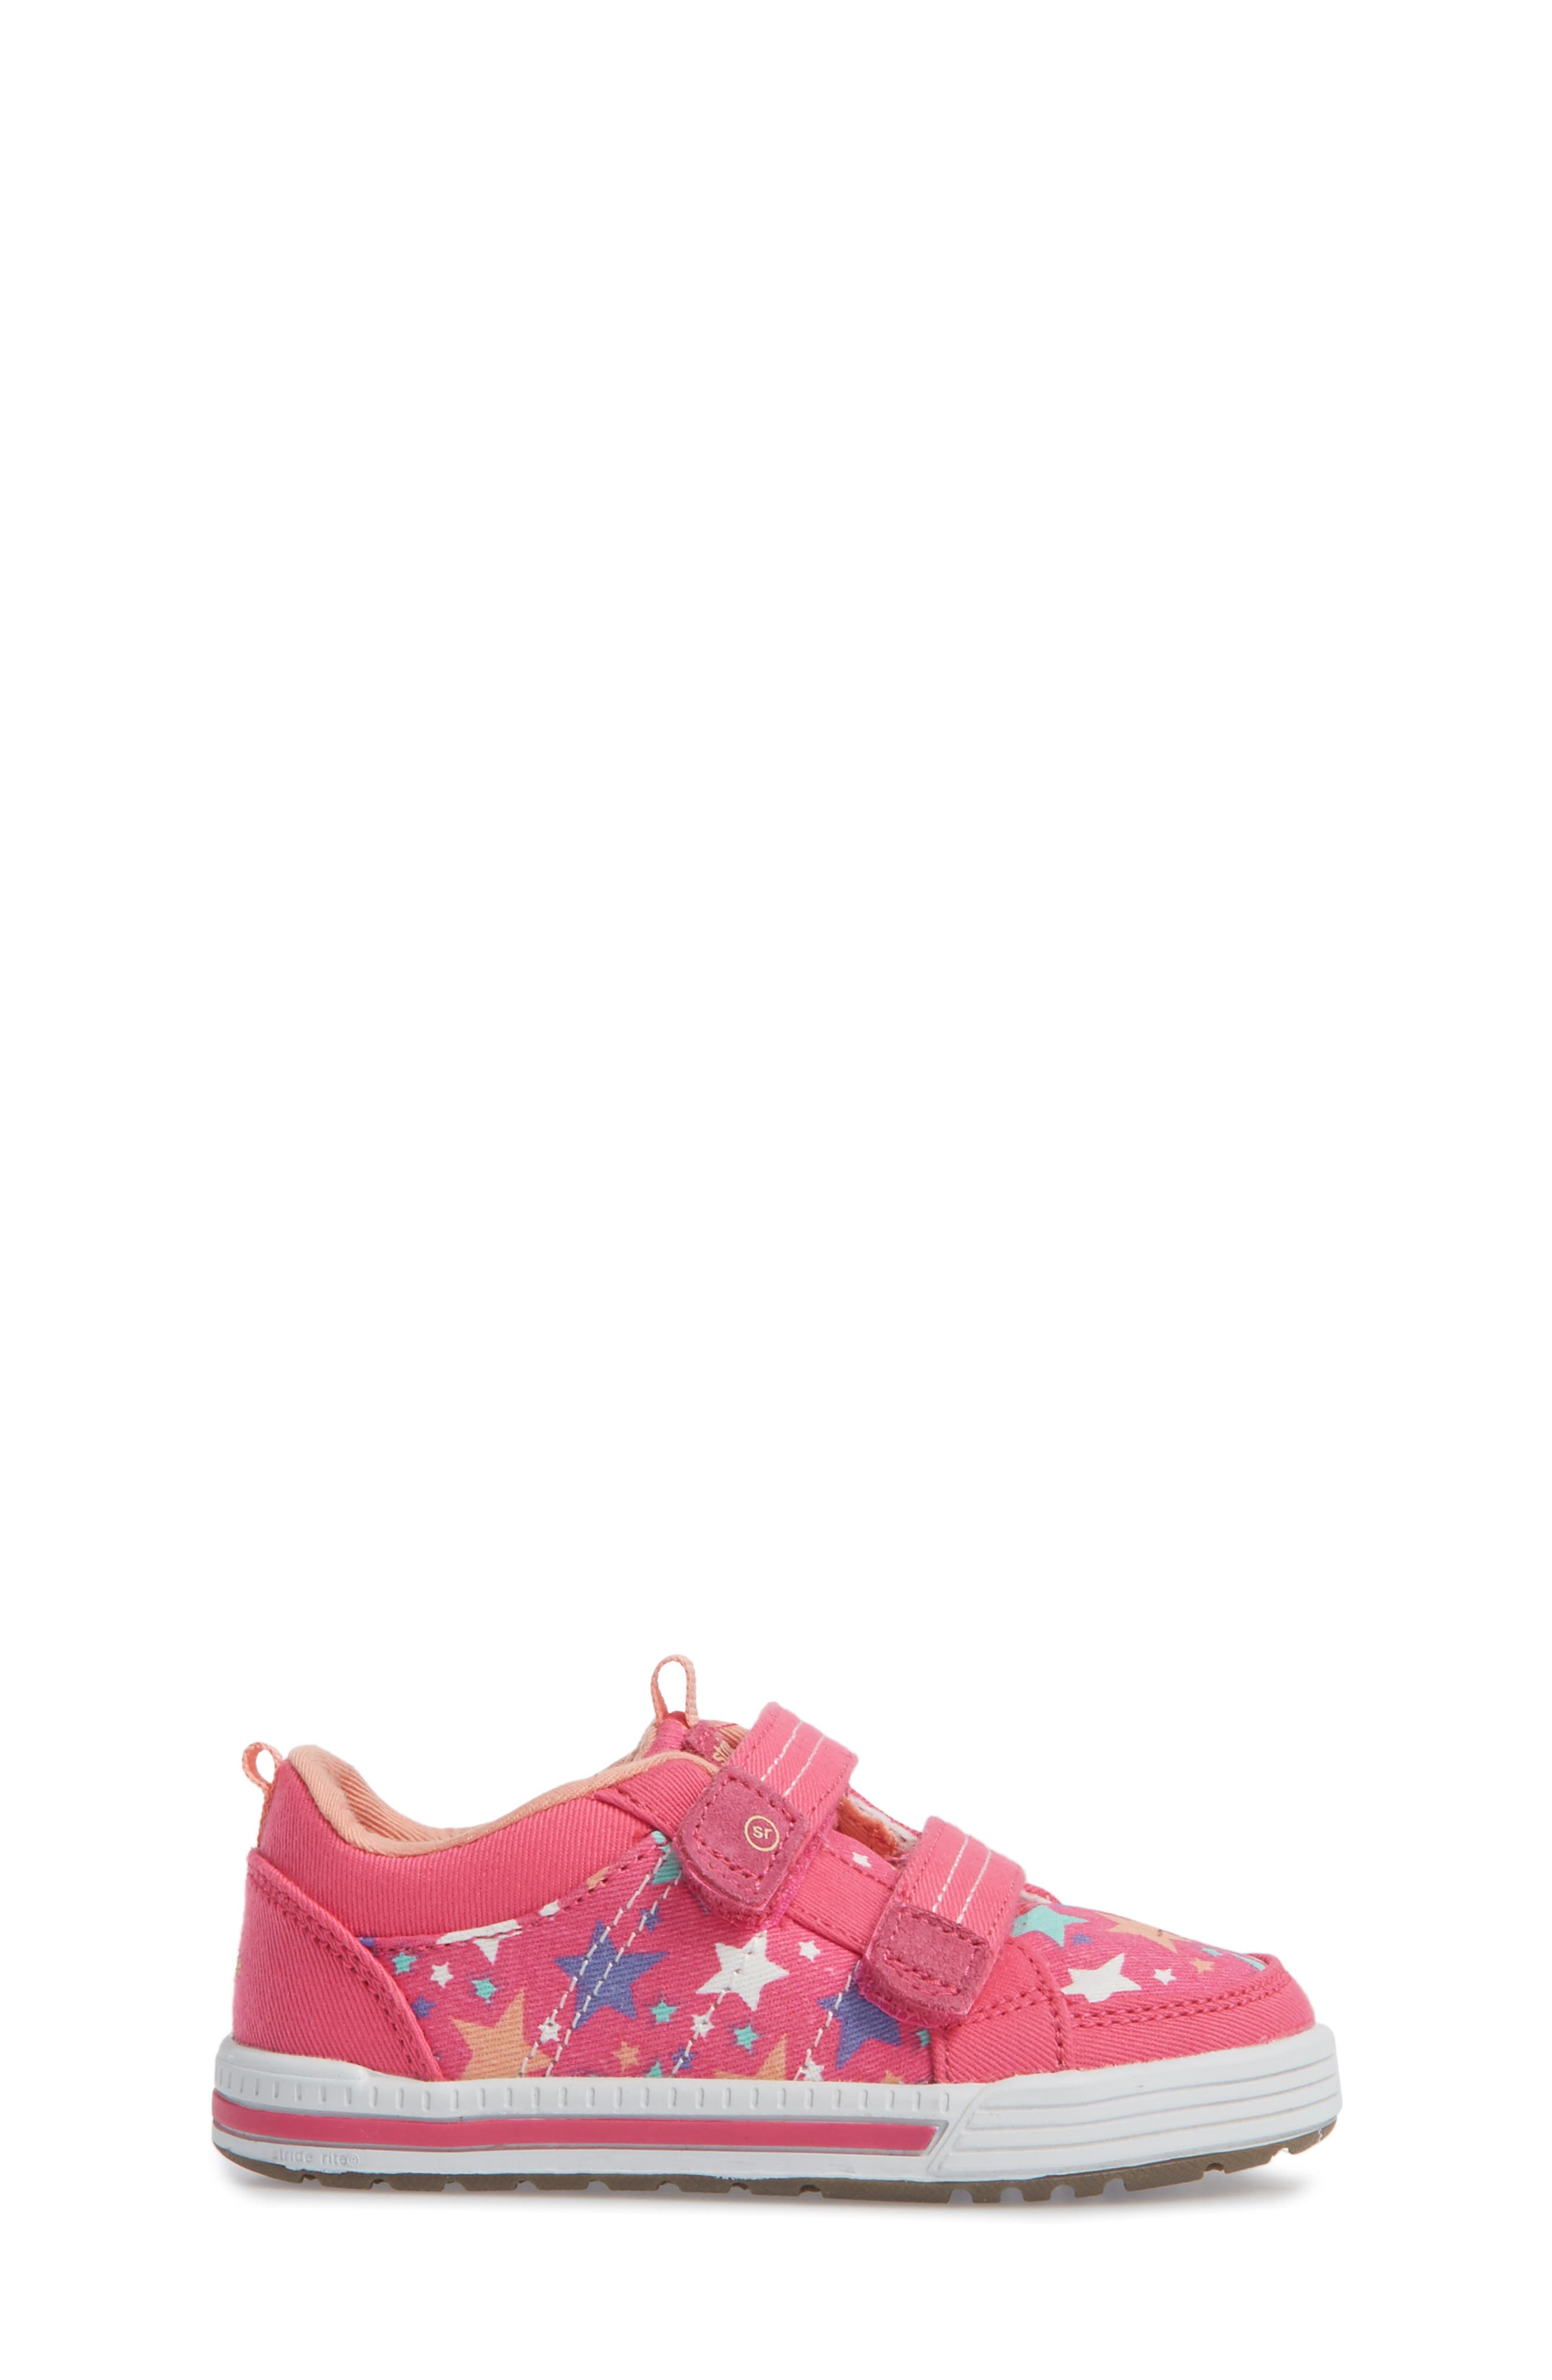 Logan Patterned Sneaker,                             Alternate thumbnail 3, color,                             Pink Star